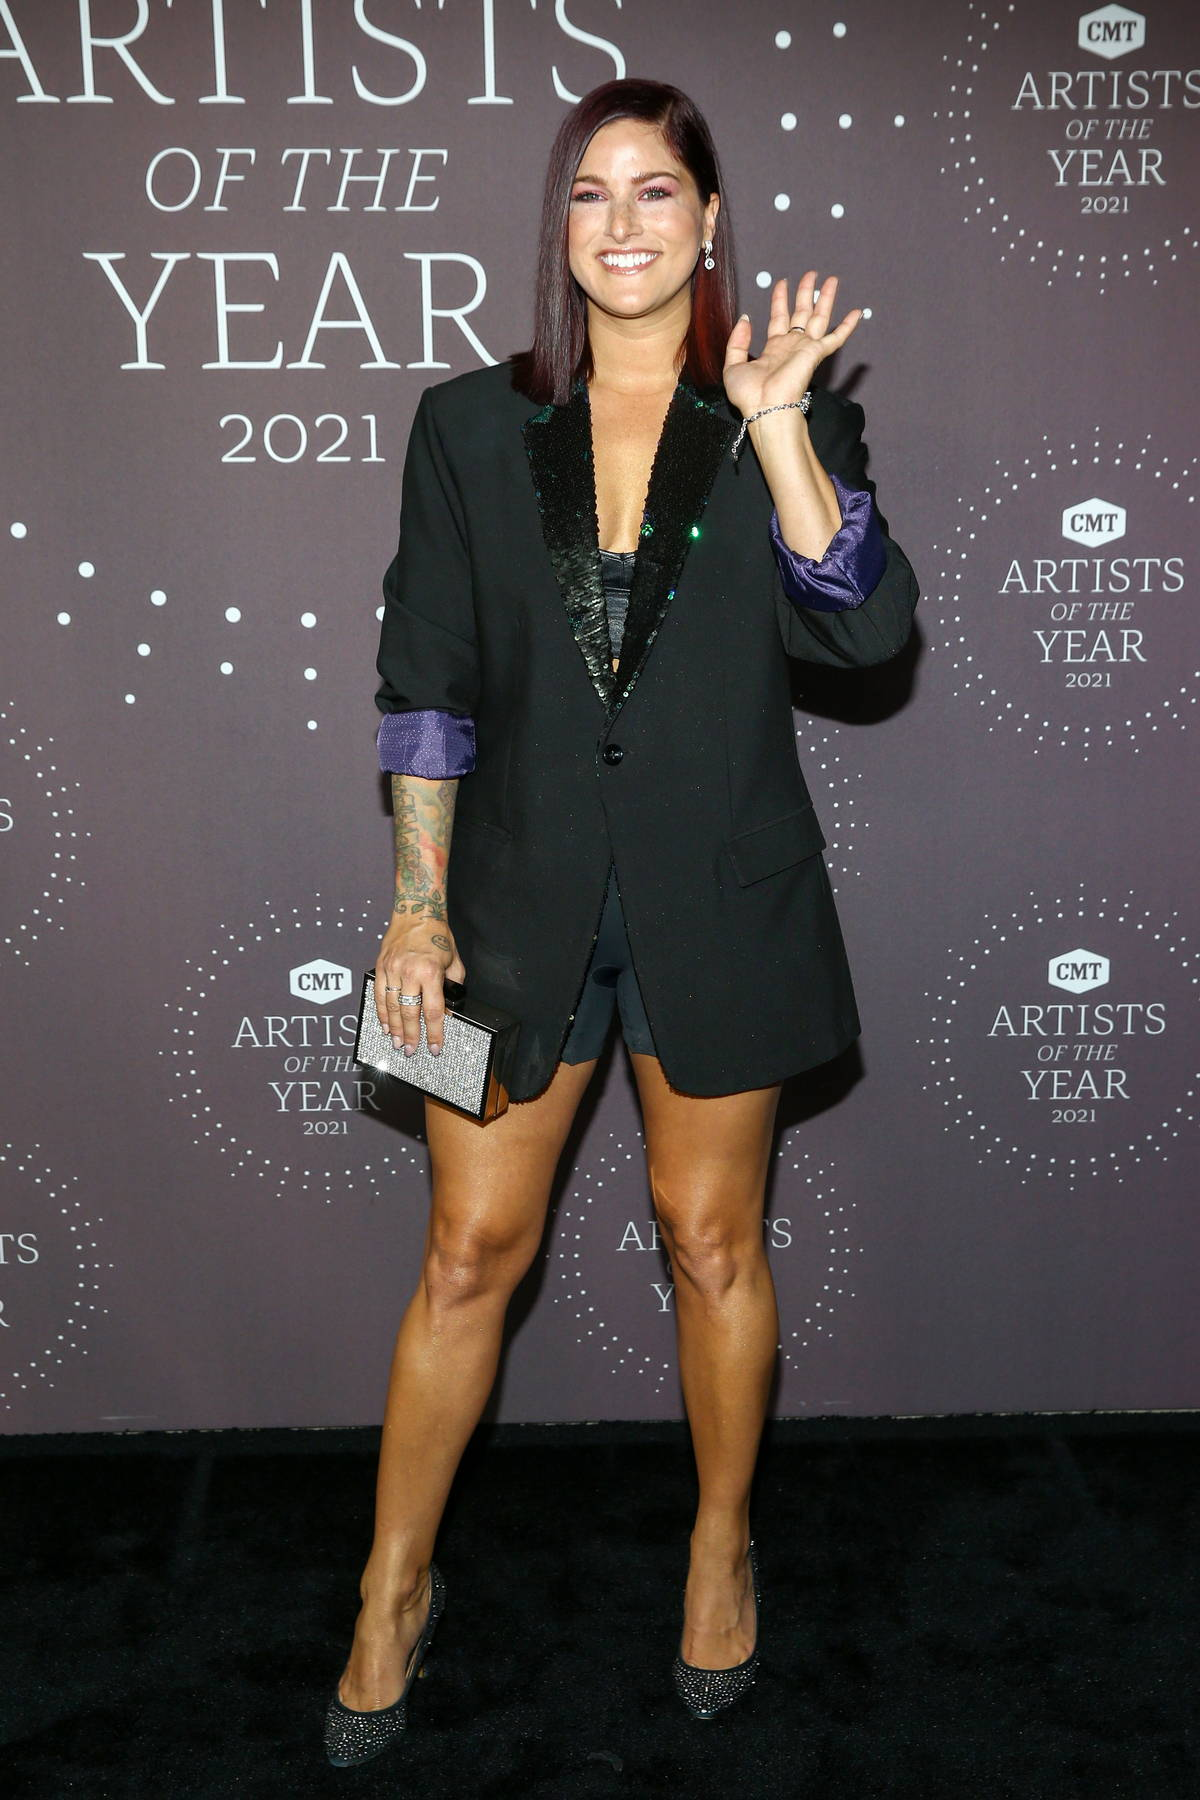 Cassadee Pope attends the CMT 'Artists of the Year 2021' Award Show in Nashville, Tennessee